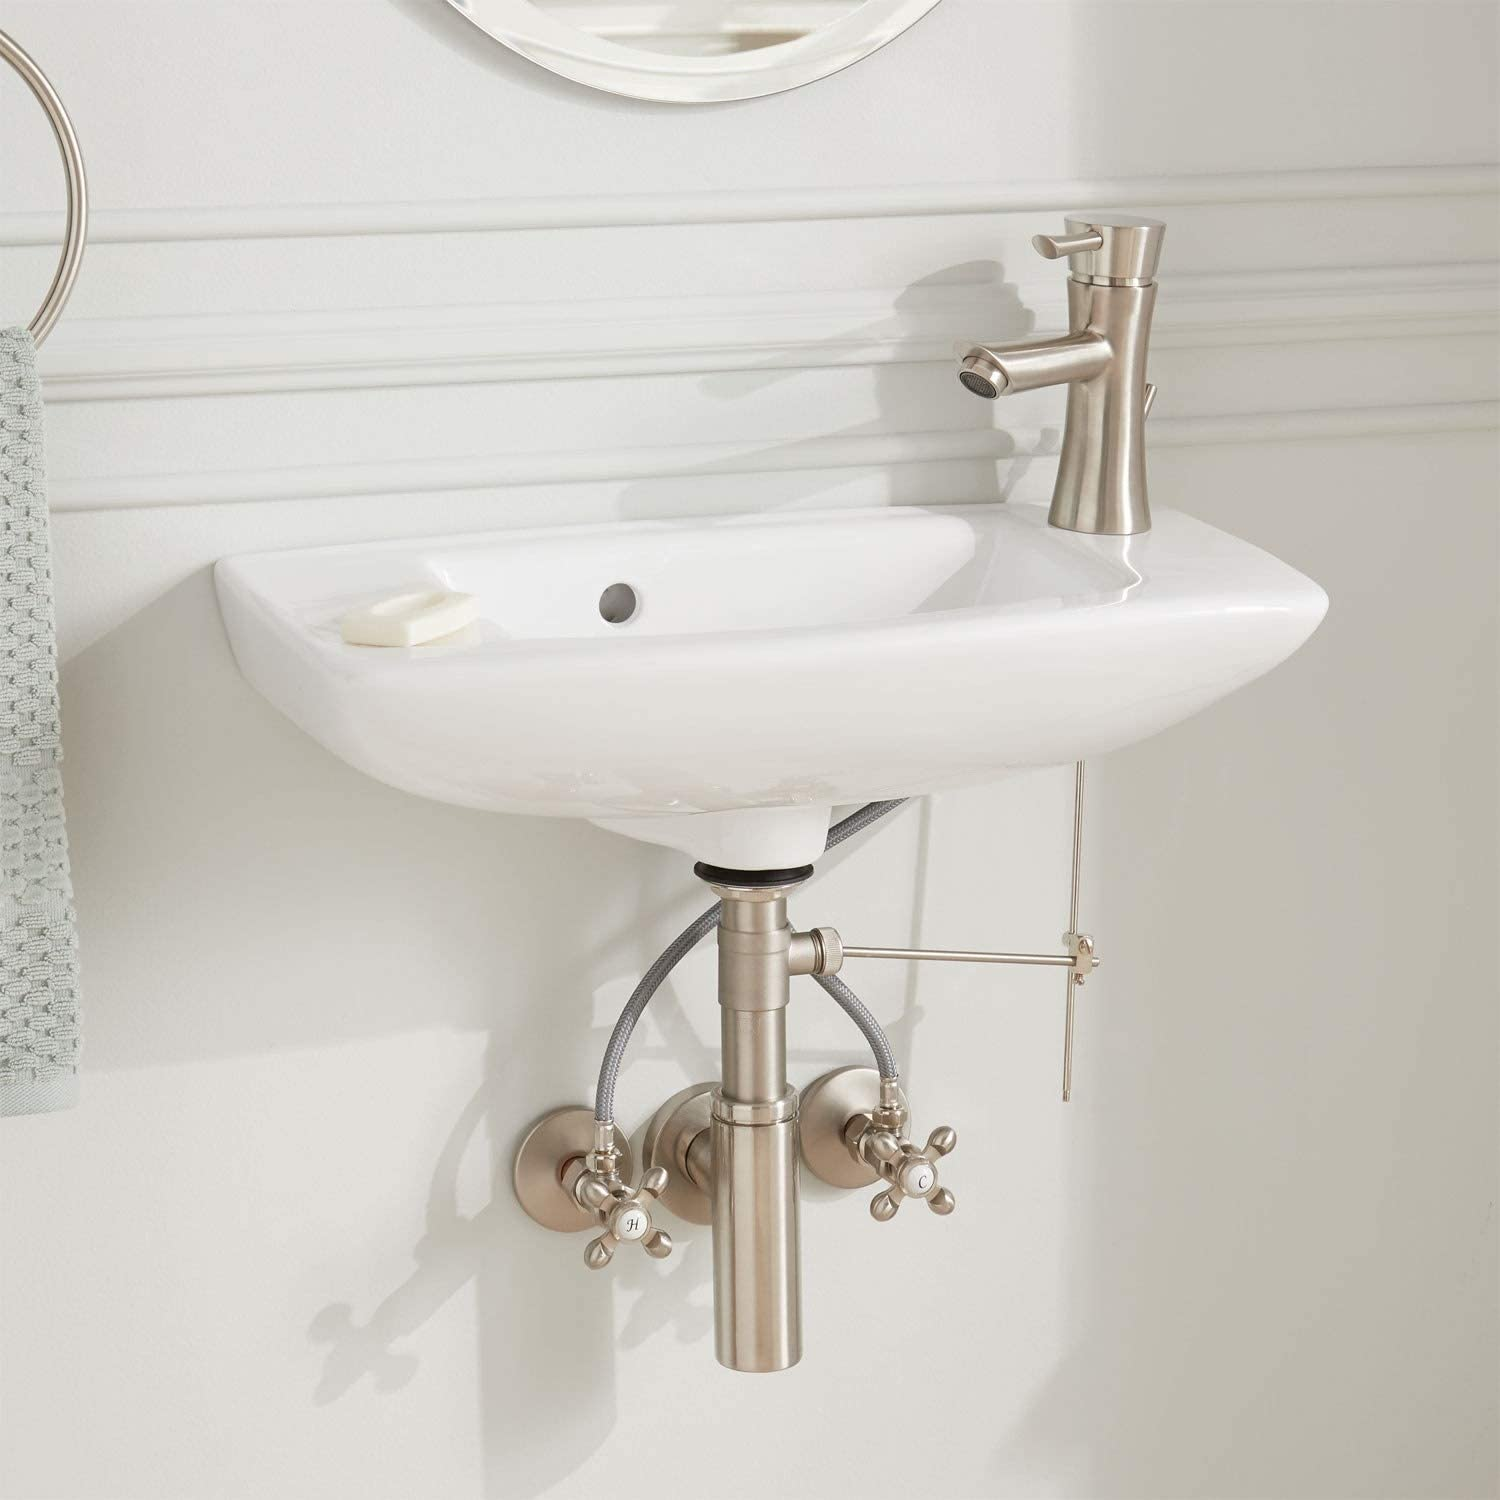 Signature Hardware 276638 Belvidere 20 Vitreous China Wall Mounted Bathroom Sink With Single Faucet Hole Vessel Sinks